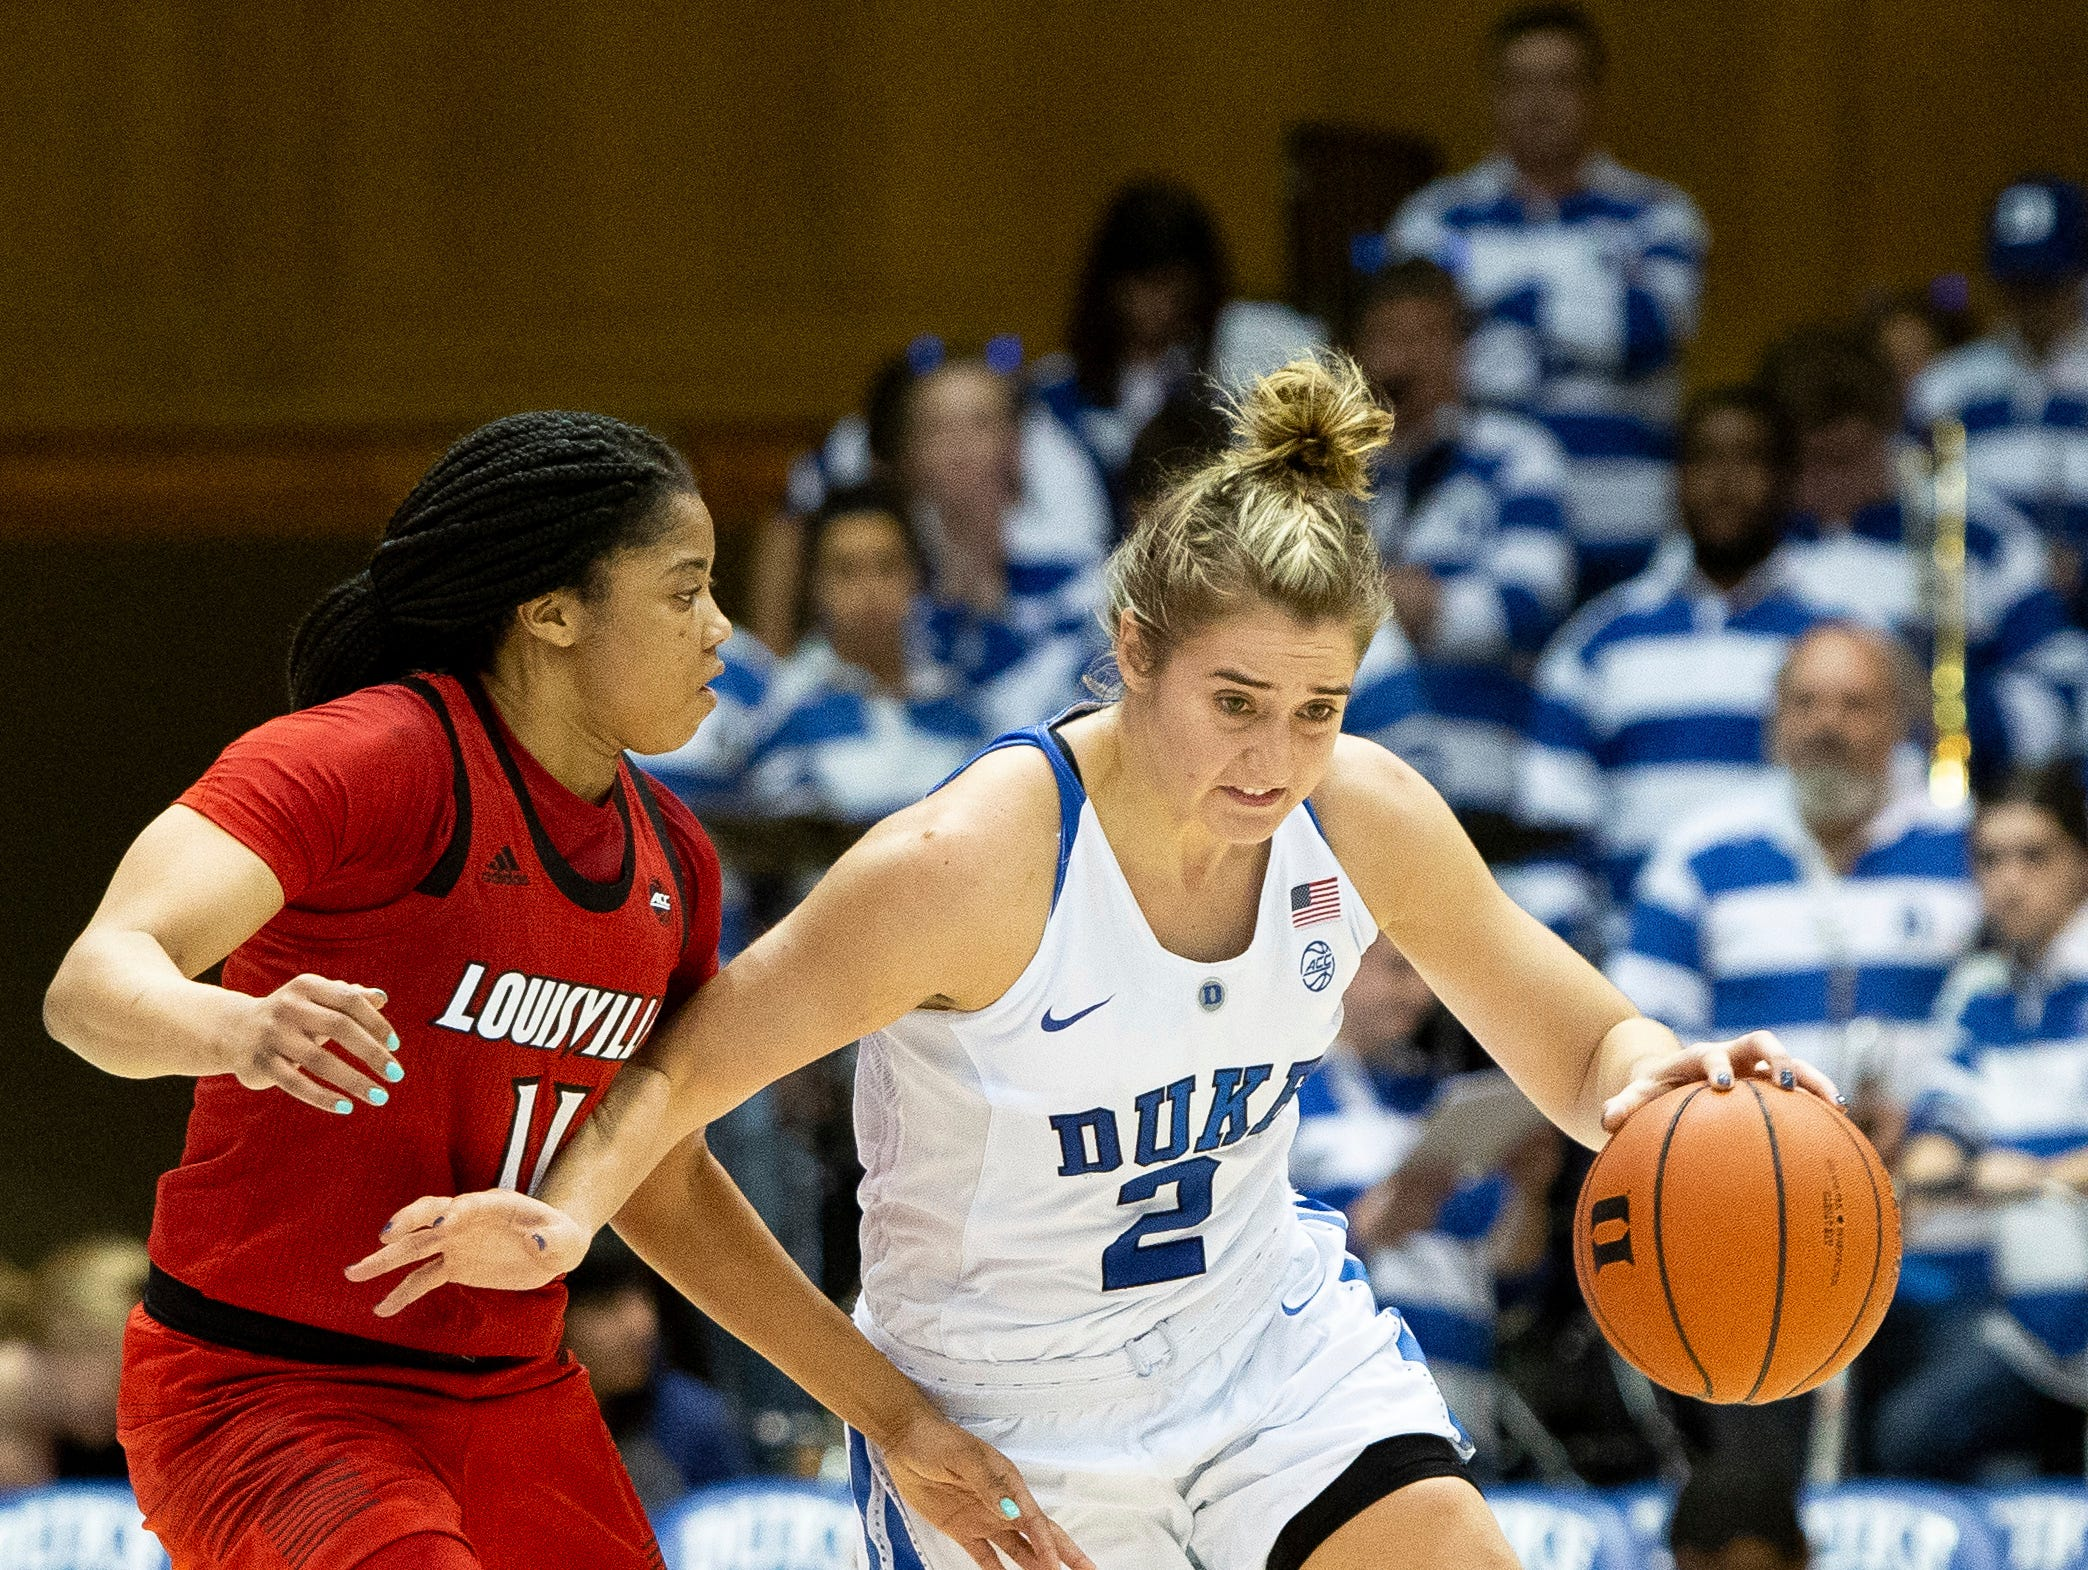 Duke's Haley Gorecki (2) handles the ball as Louisville's Arica Carter (11) defends during the second half of an NCAA college basketball game in Durham, N.C., Sunday, Jan. 6, 2019.